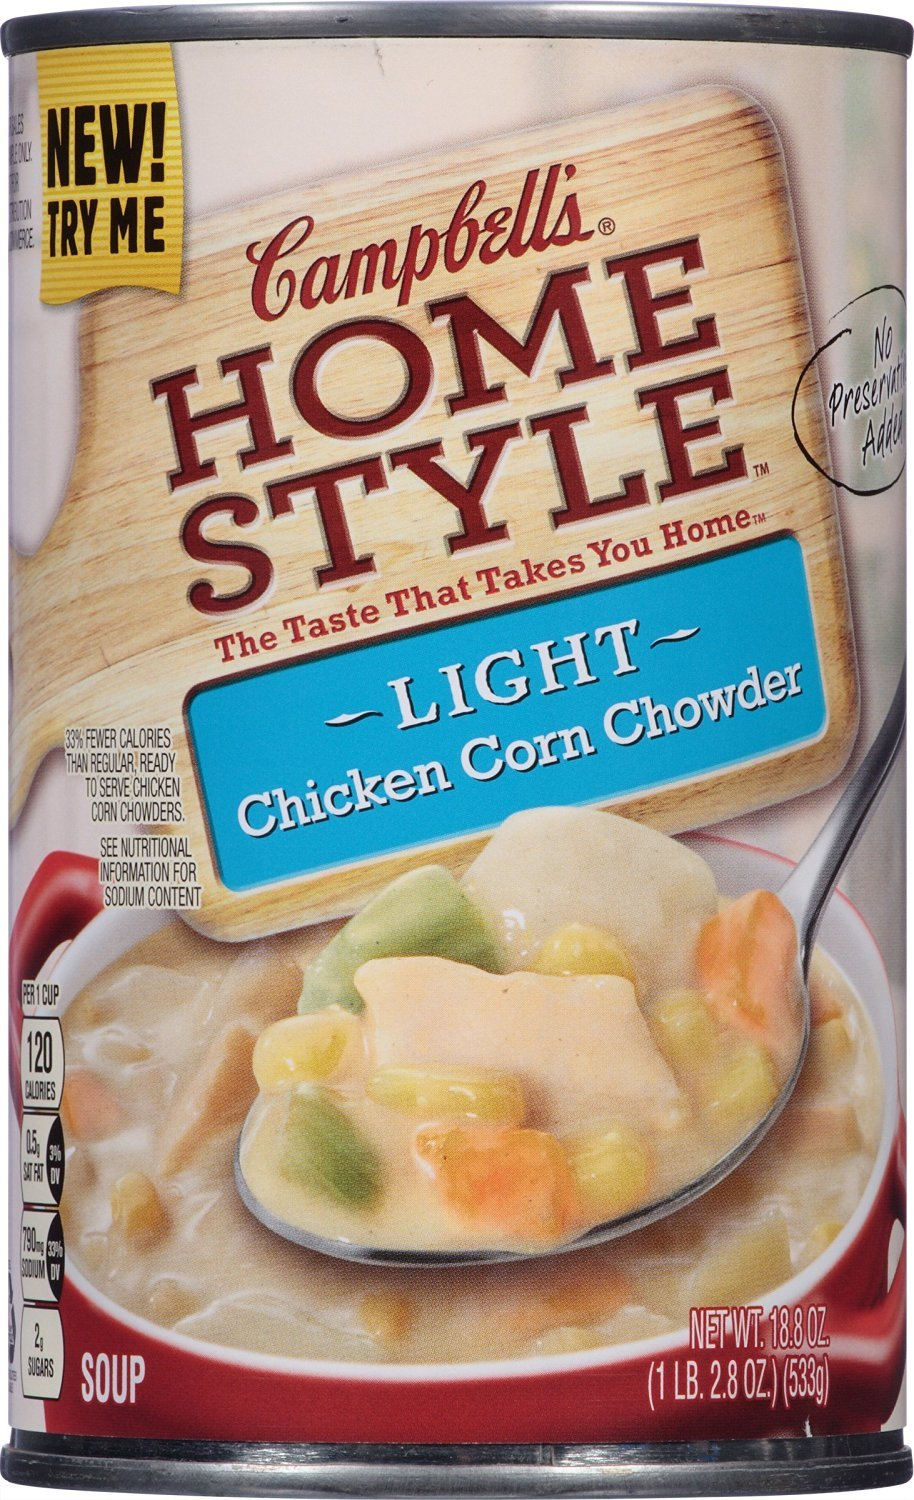 Amazon.com : Campbells Homestyle Light Soup, Chicken Corn Chowder, 18.8 Ounce : Grocery & Gourmet Food